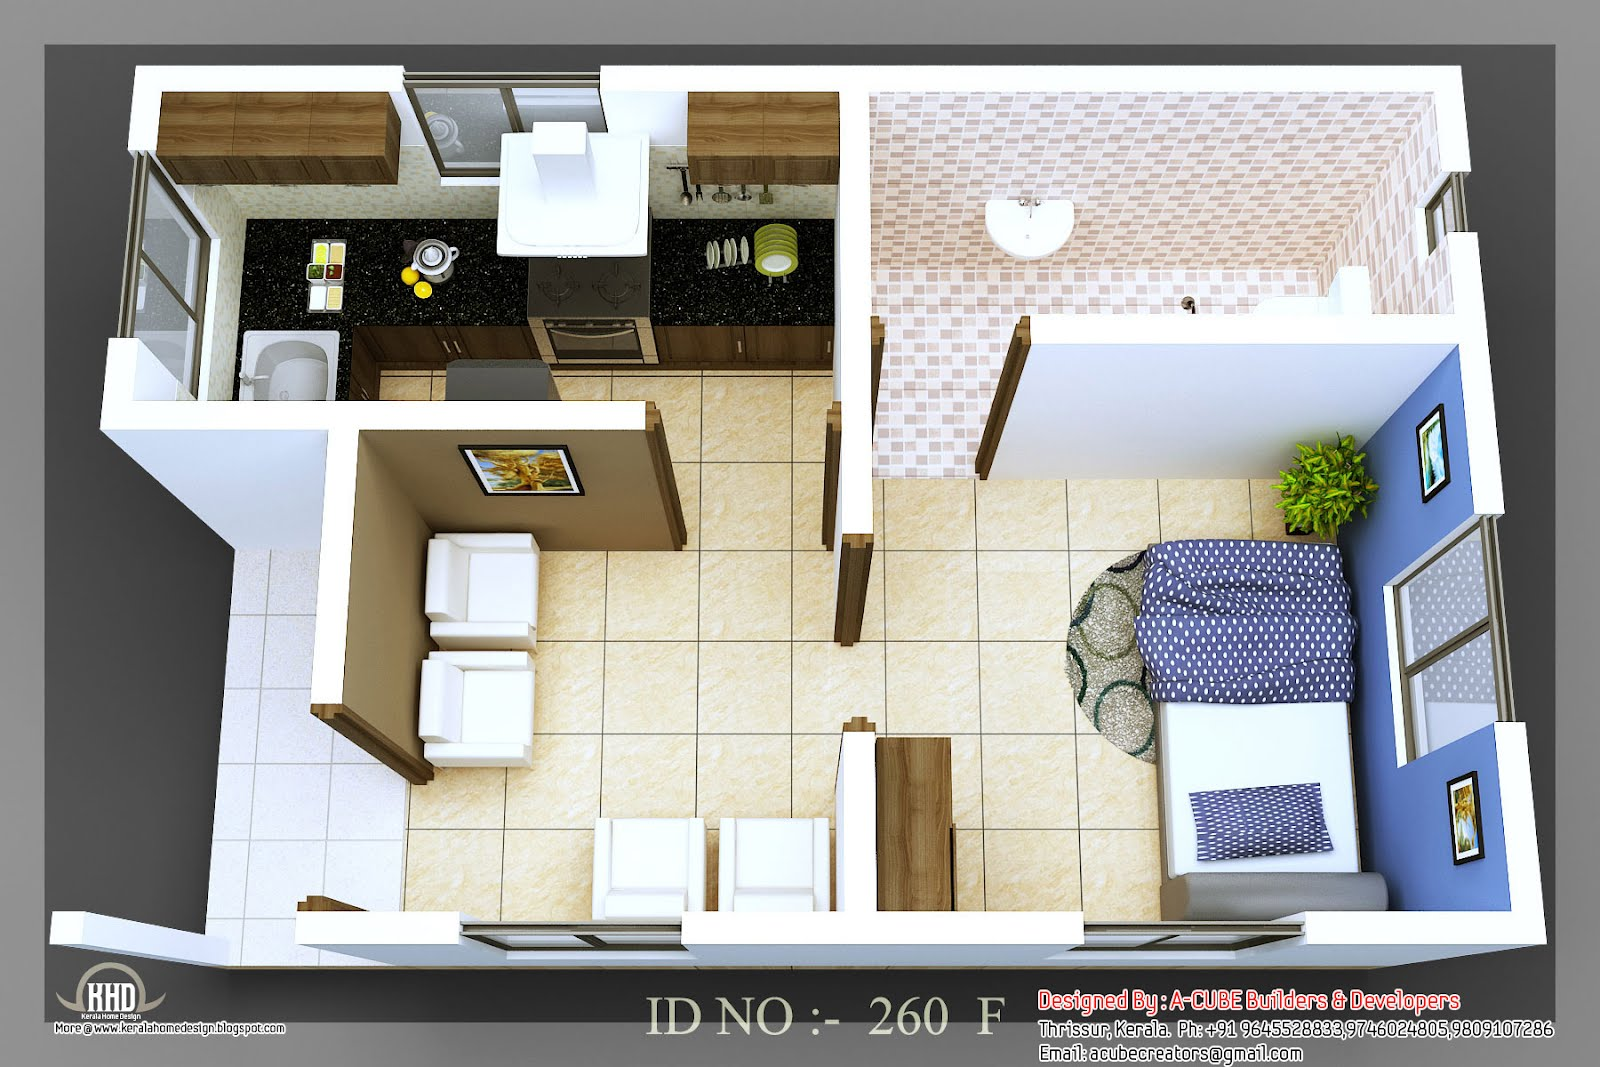 about this isometric small house plans a cube builders developers home